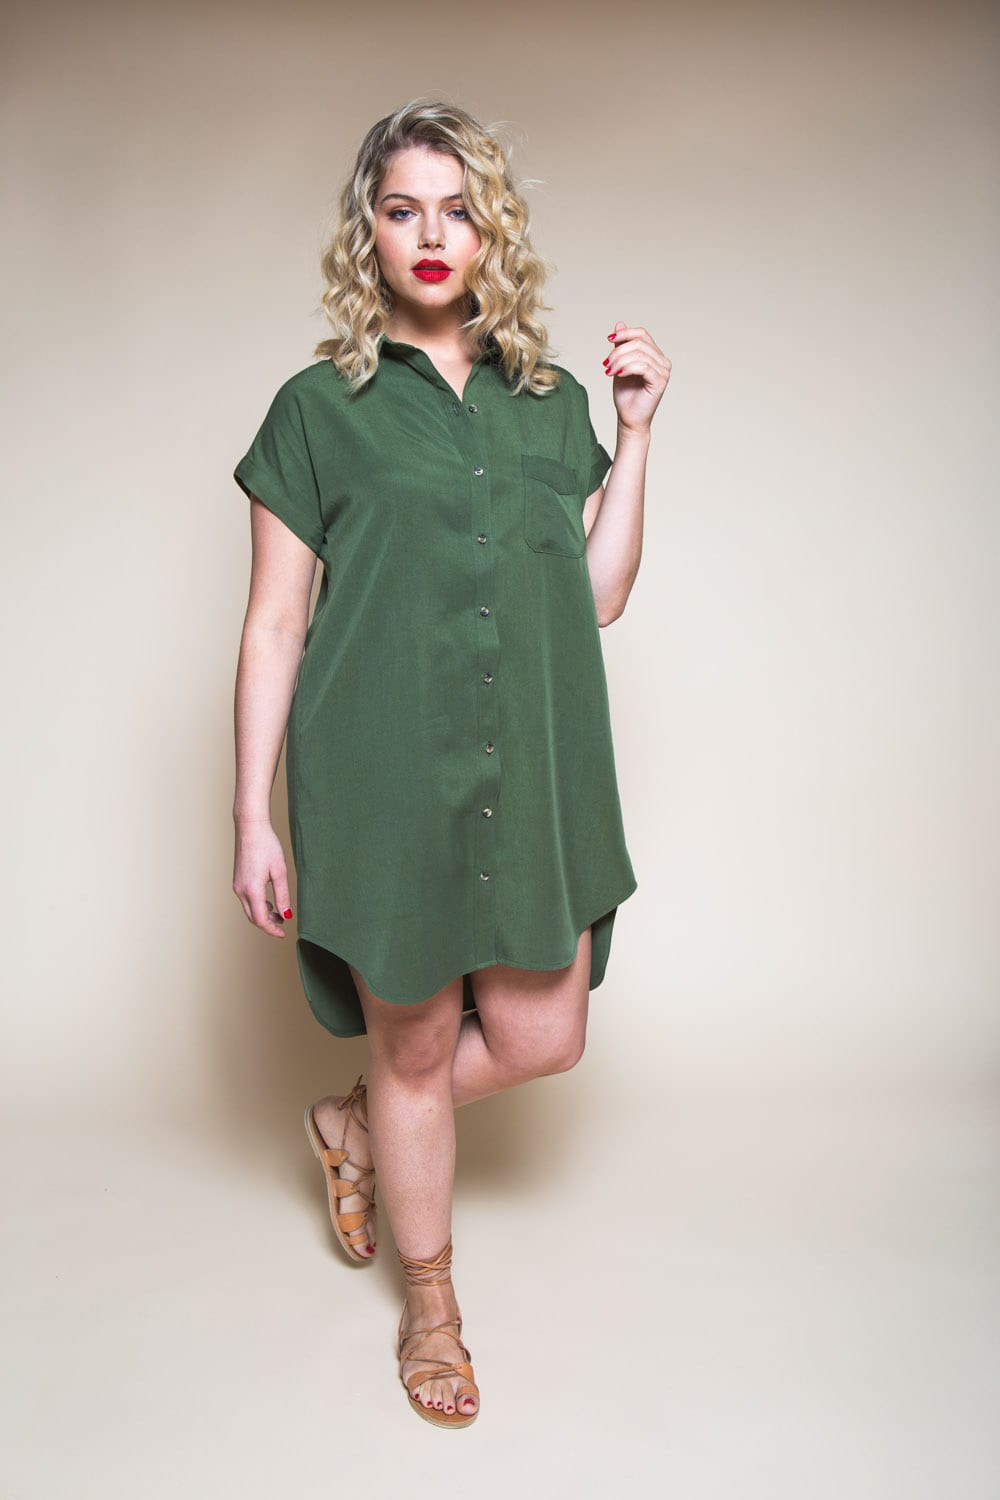 Kalle Shirtdress Pattern // Closet Case Patterns